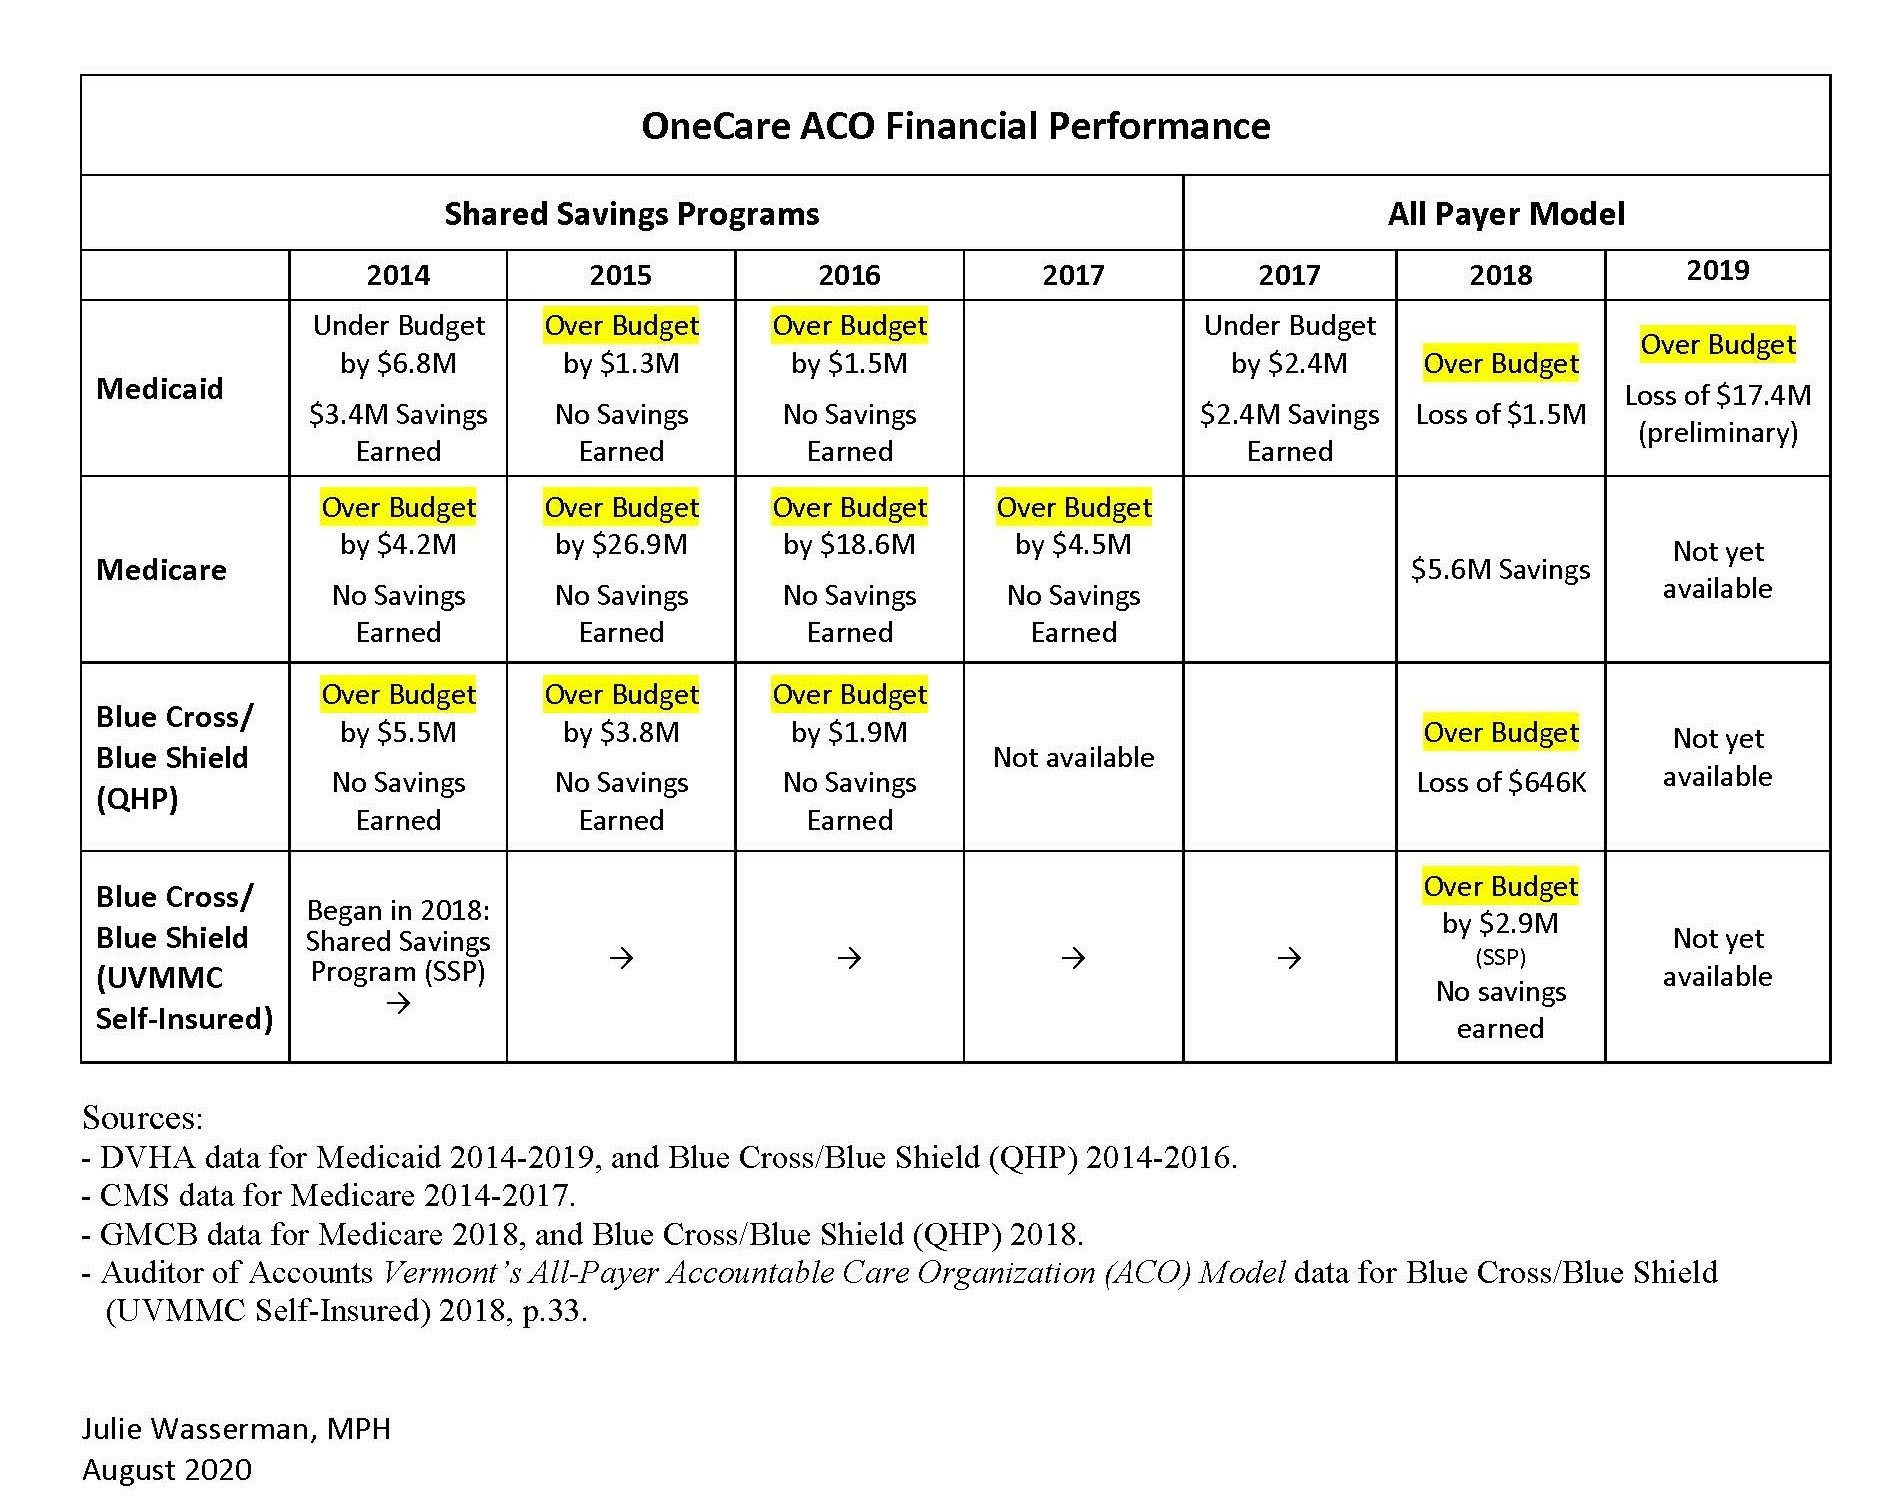 OneCare ACO Financial Performance